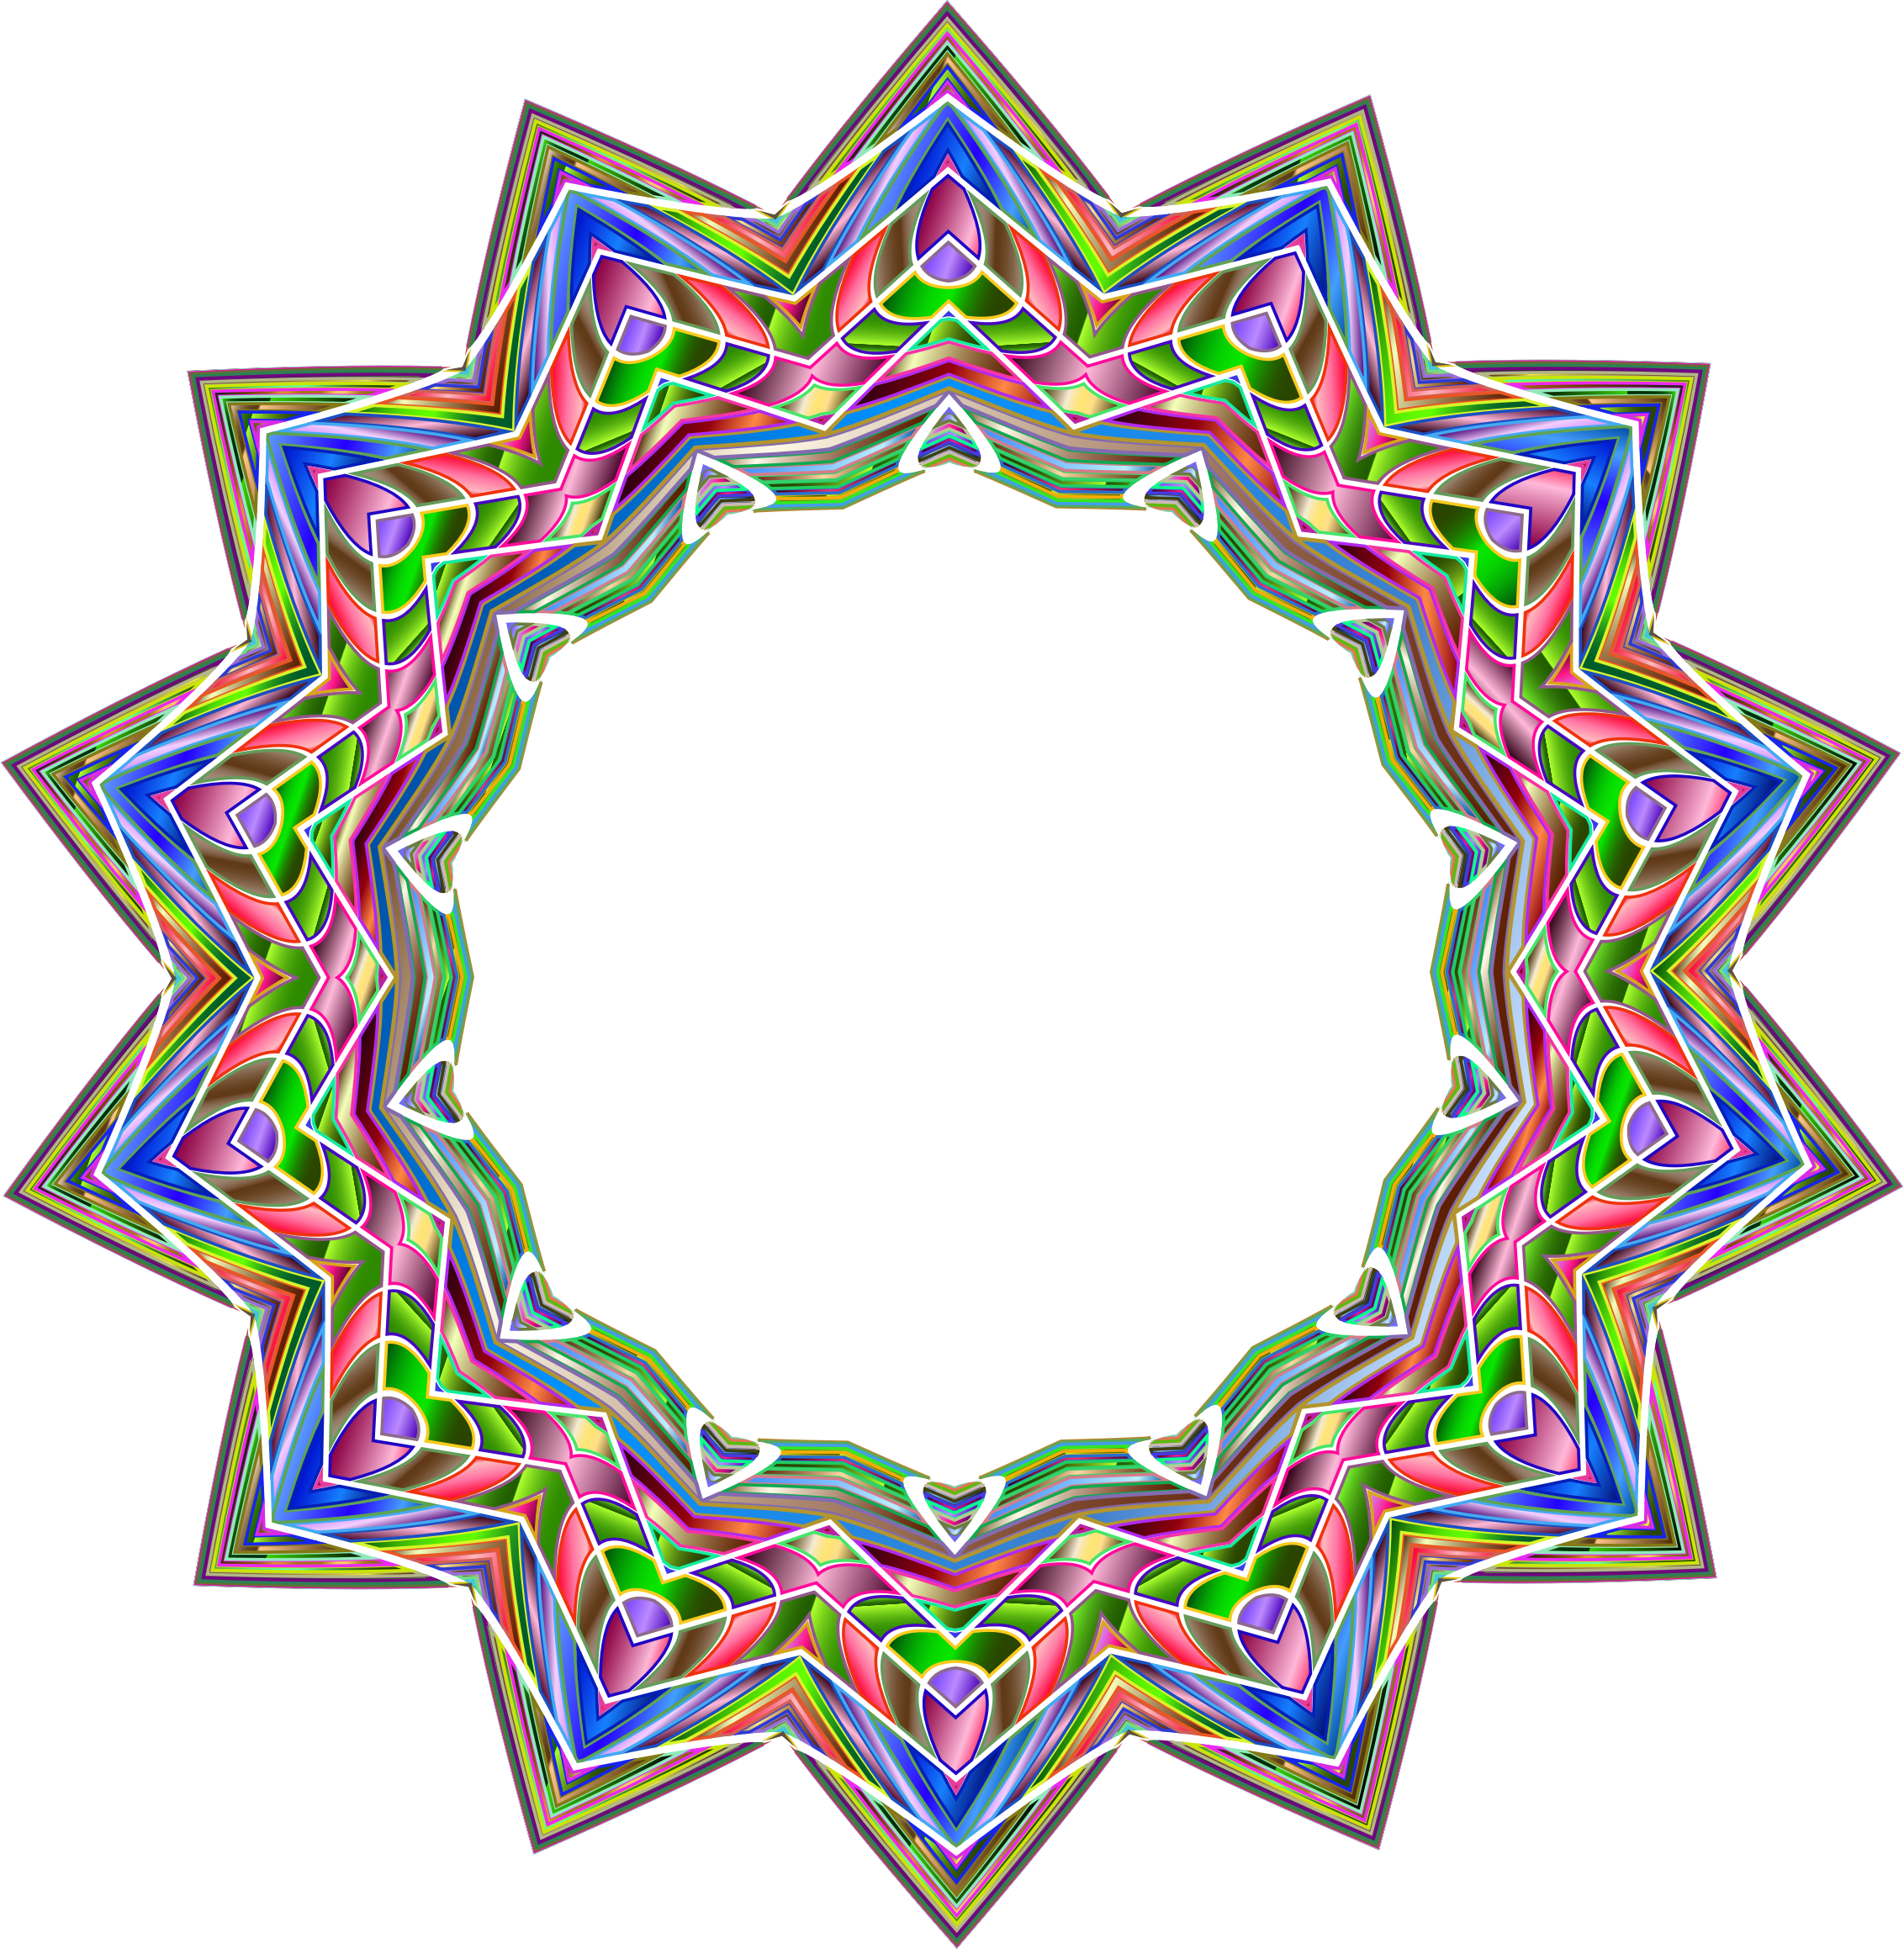 Chromatic Geometric Frame by GDJ